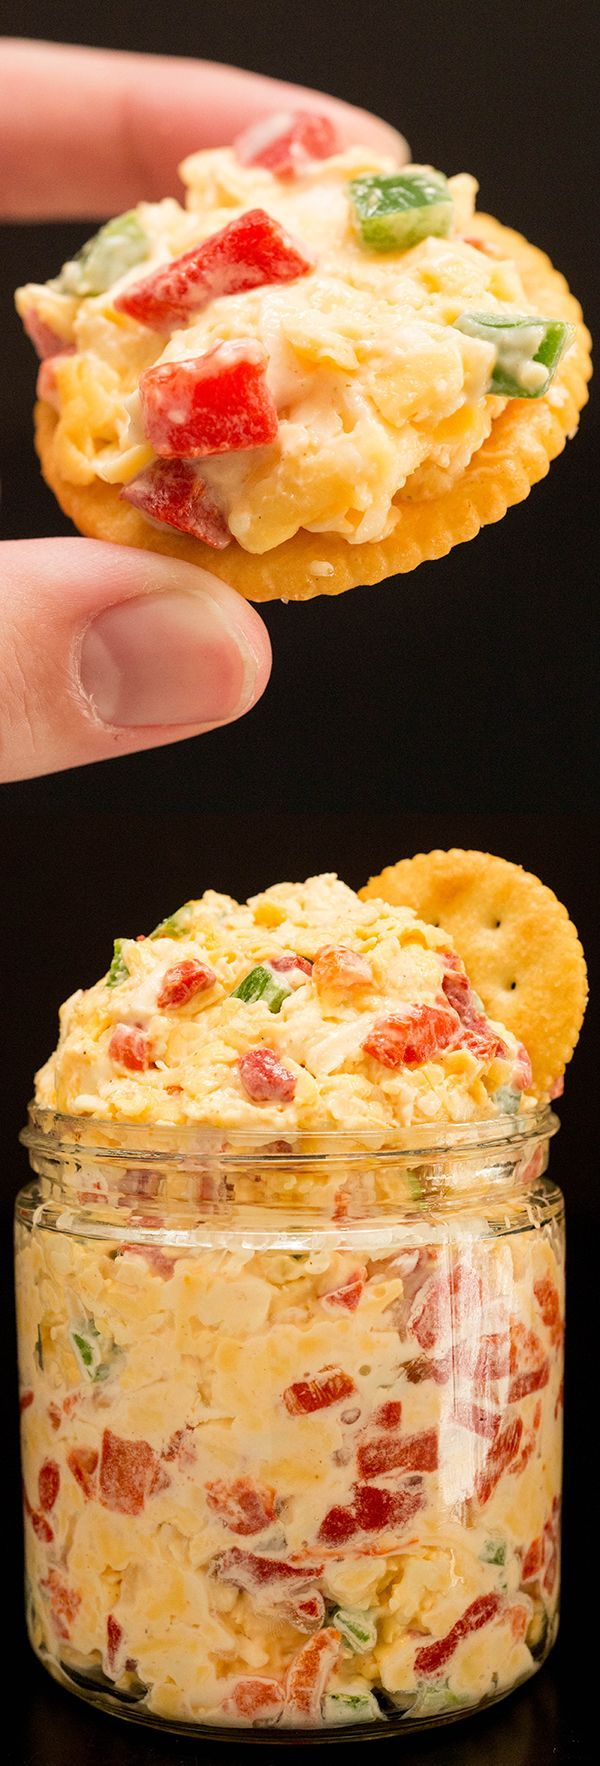 Pimento Cheese Recipe - Great game day appetizer! #gameday #superbowl #appetizer